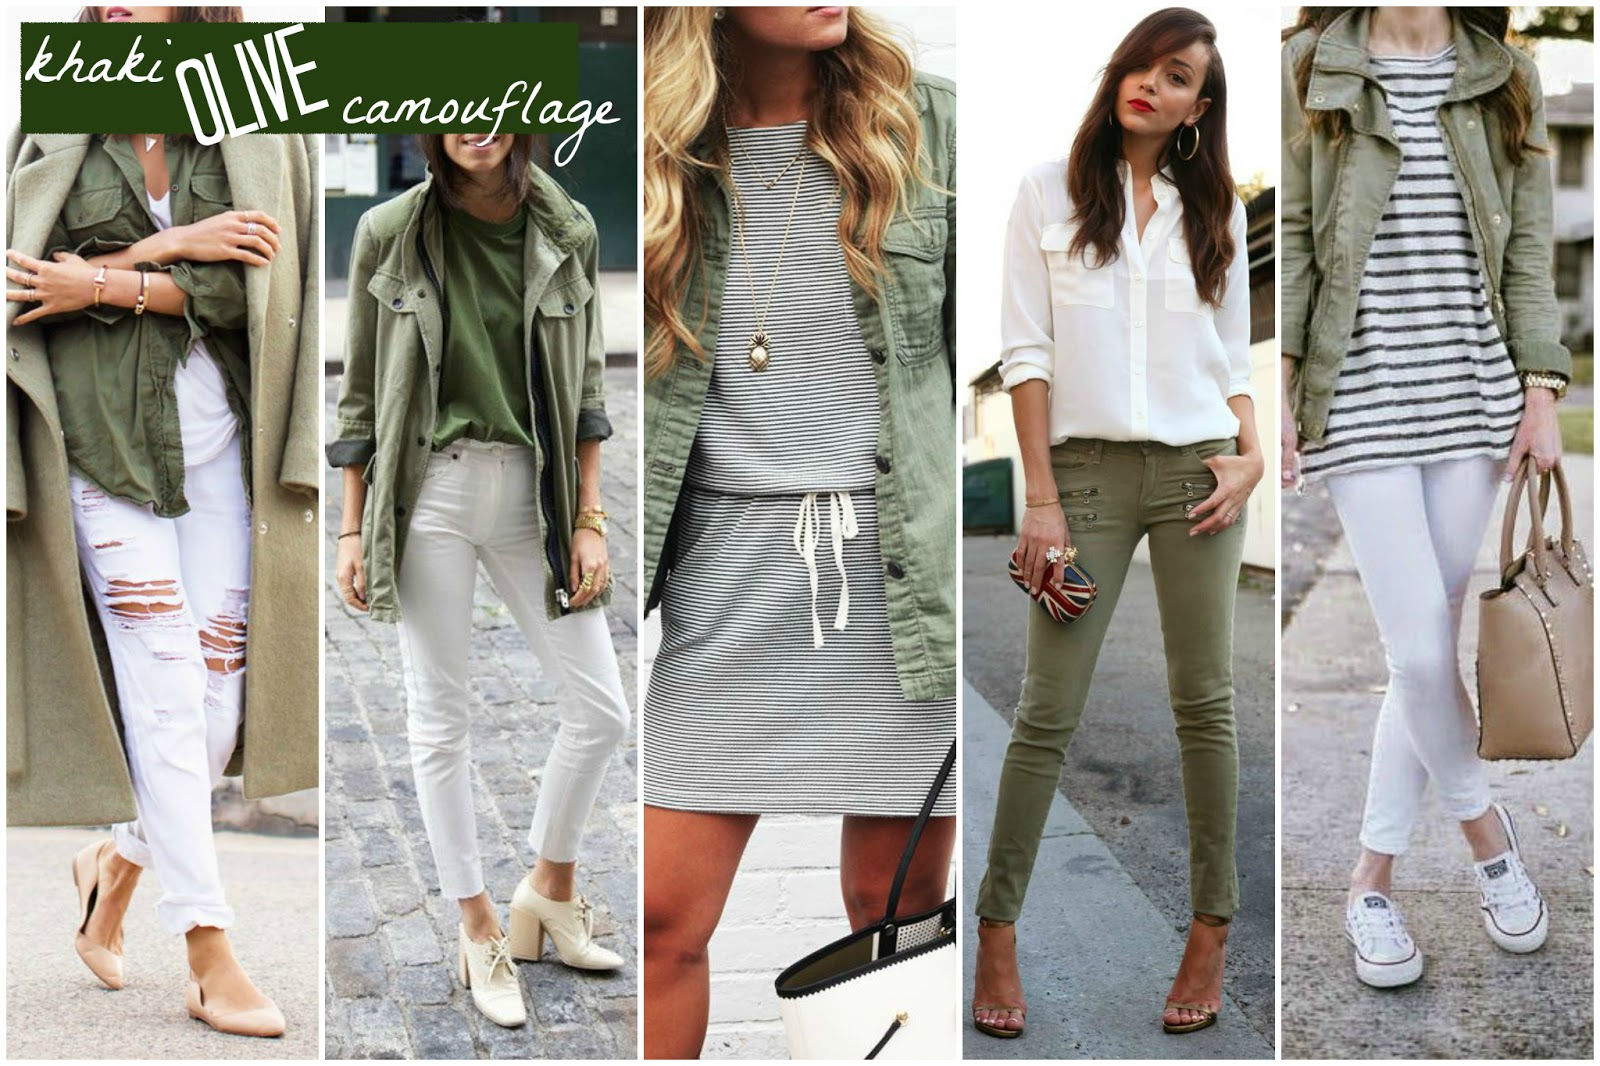 TheBlondeLion Inspiration Trend Outfit Spring Summer khaki olive camouflage